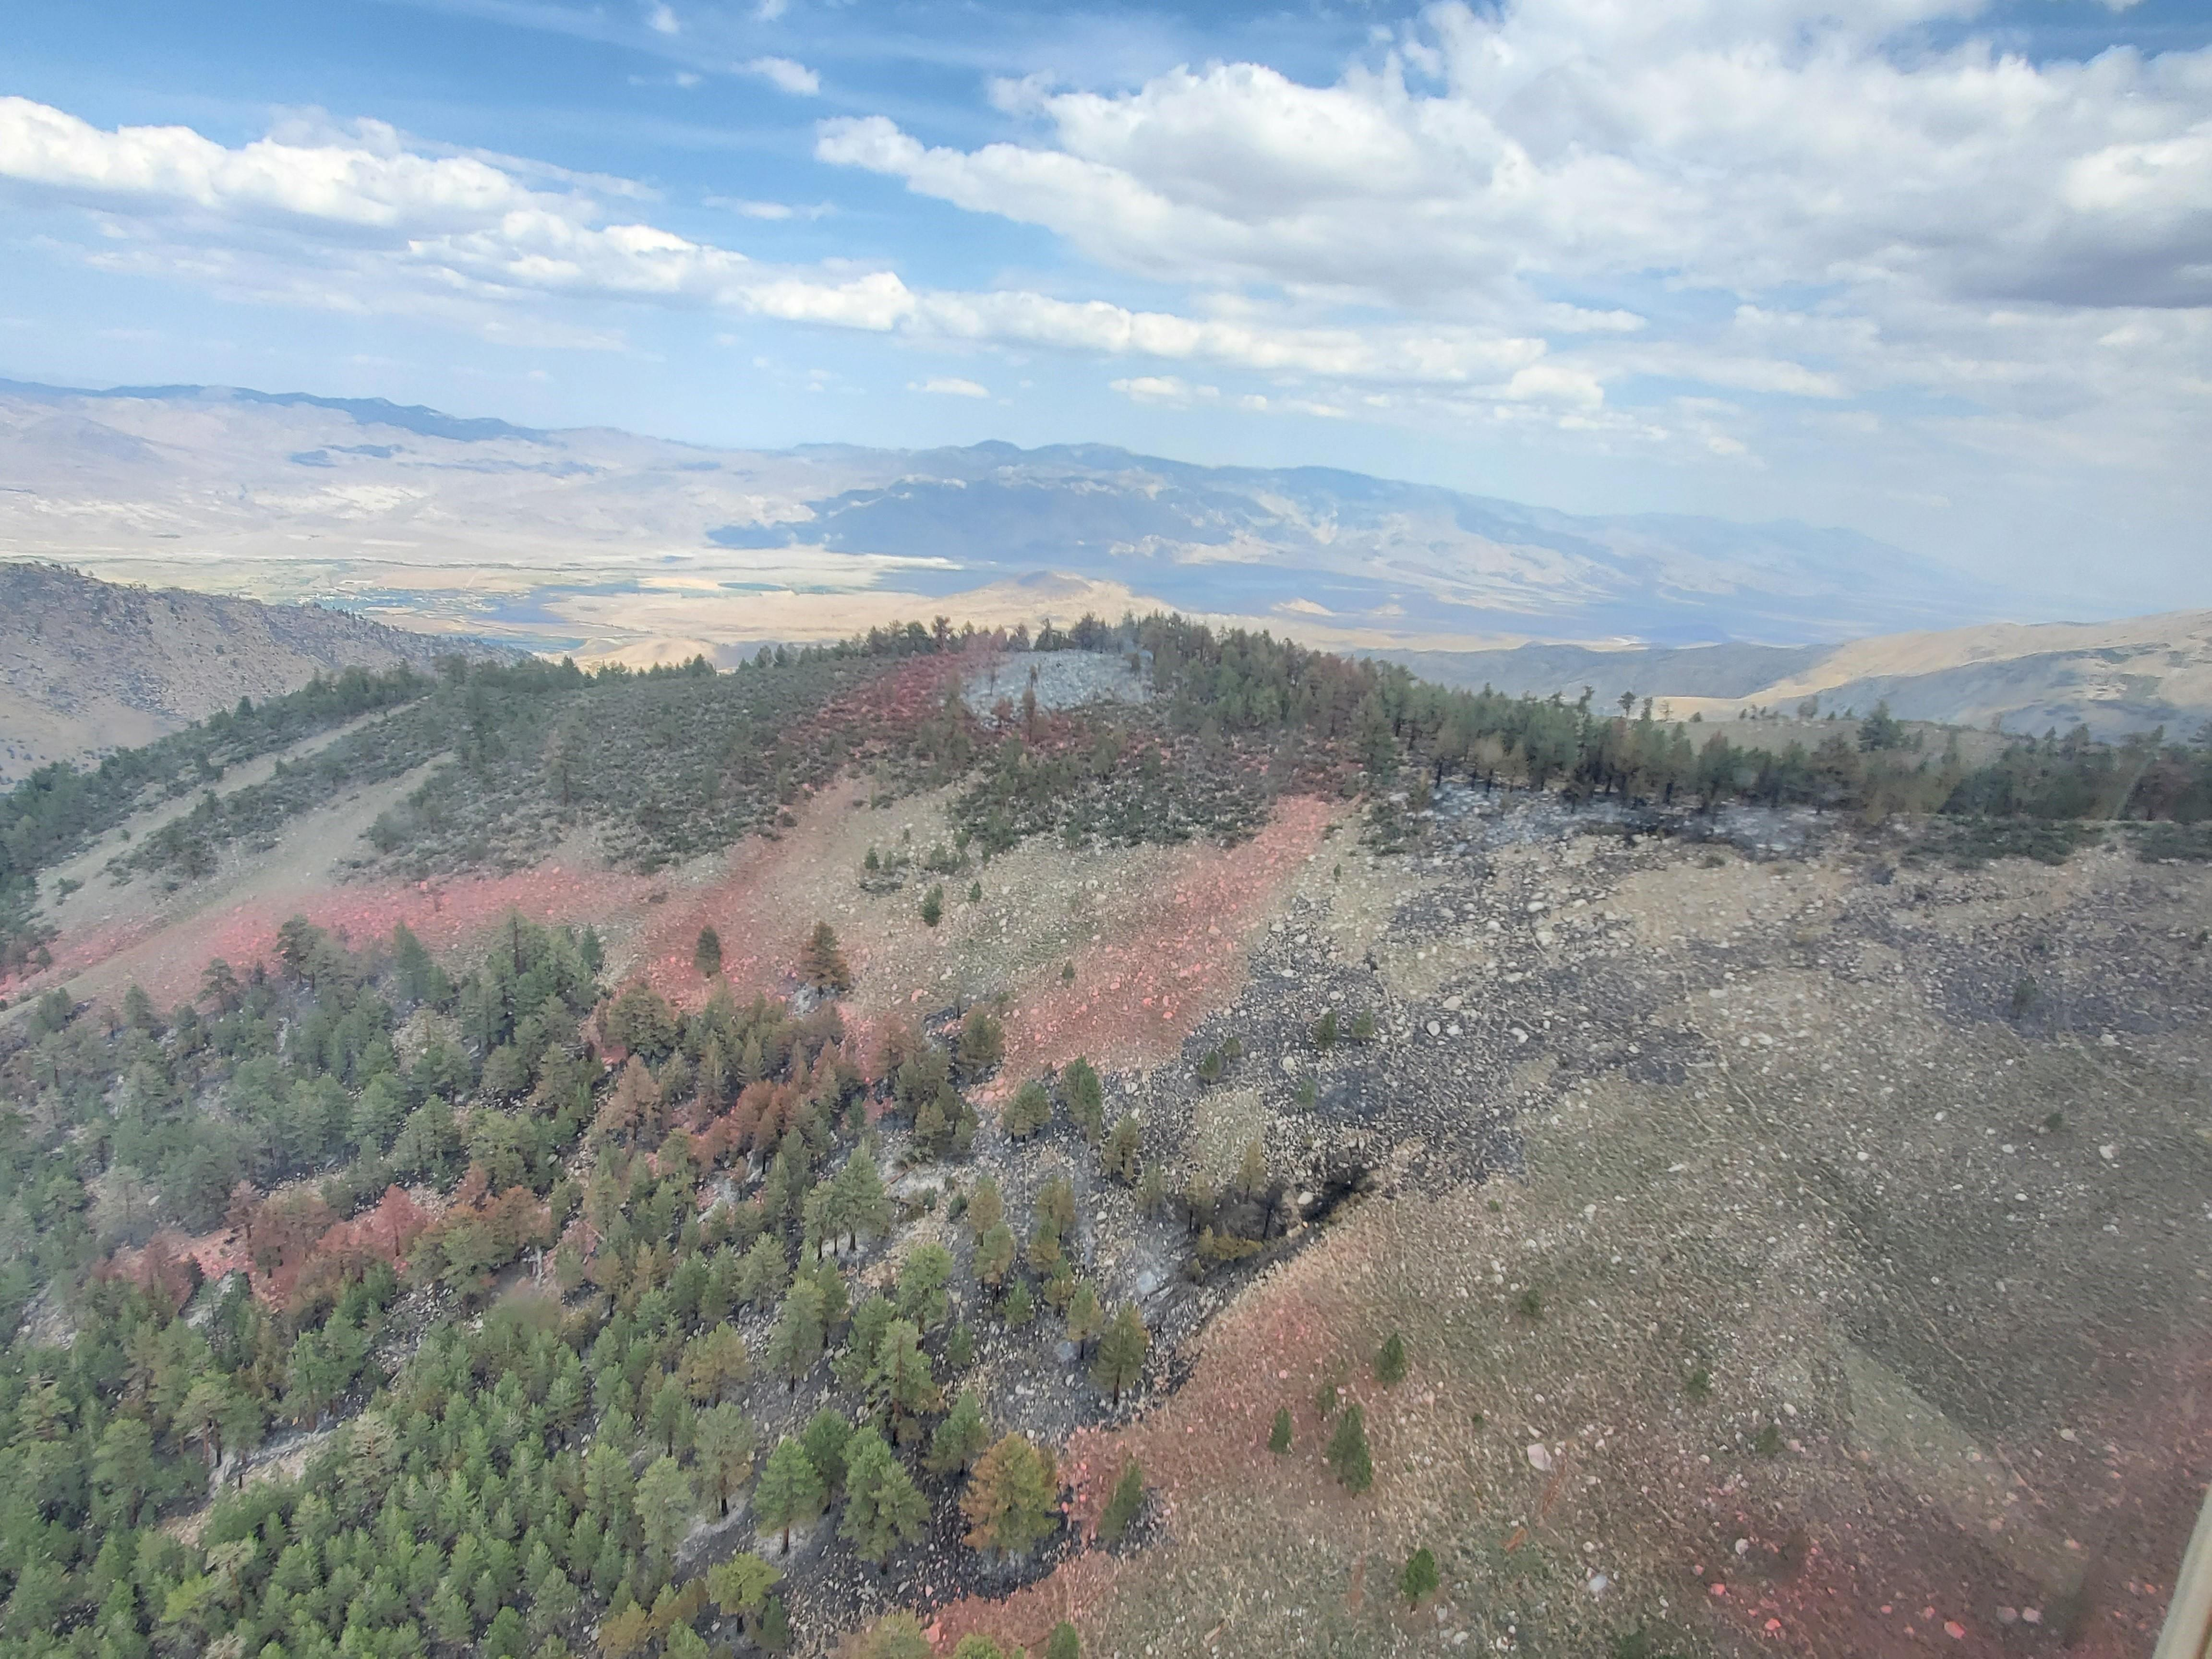 This photo taken from the air shows the ridge where the Glacier Fire is burning.